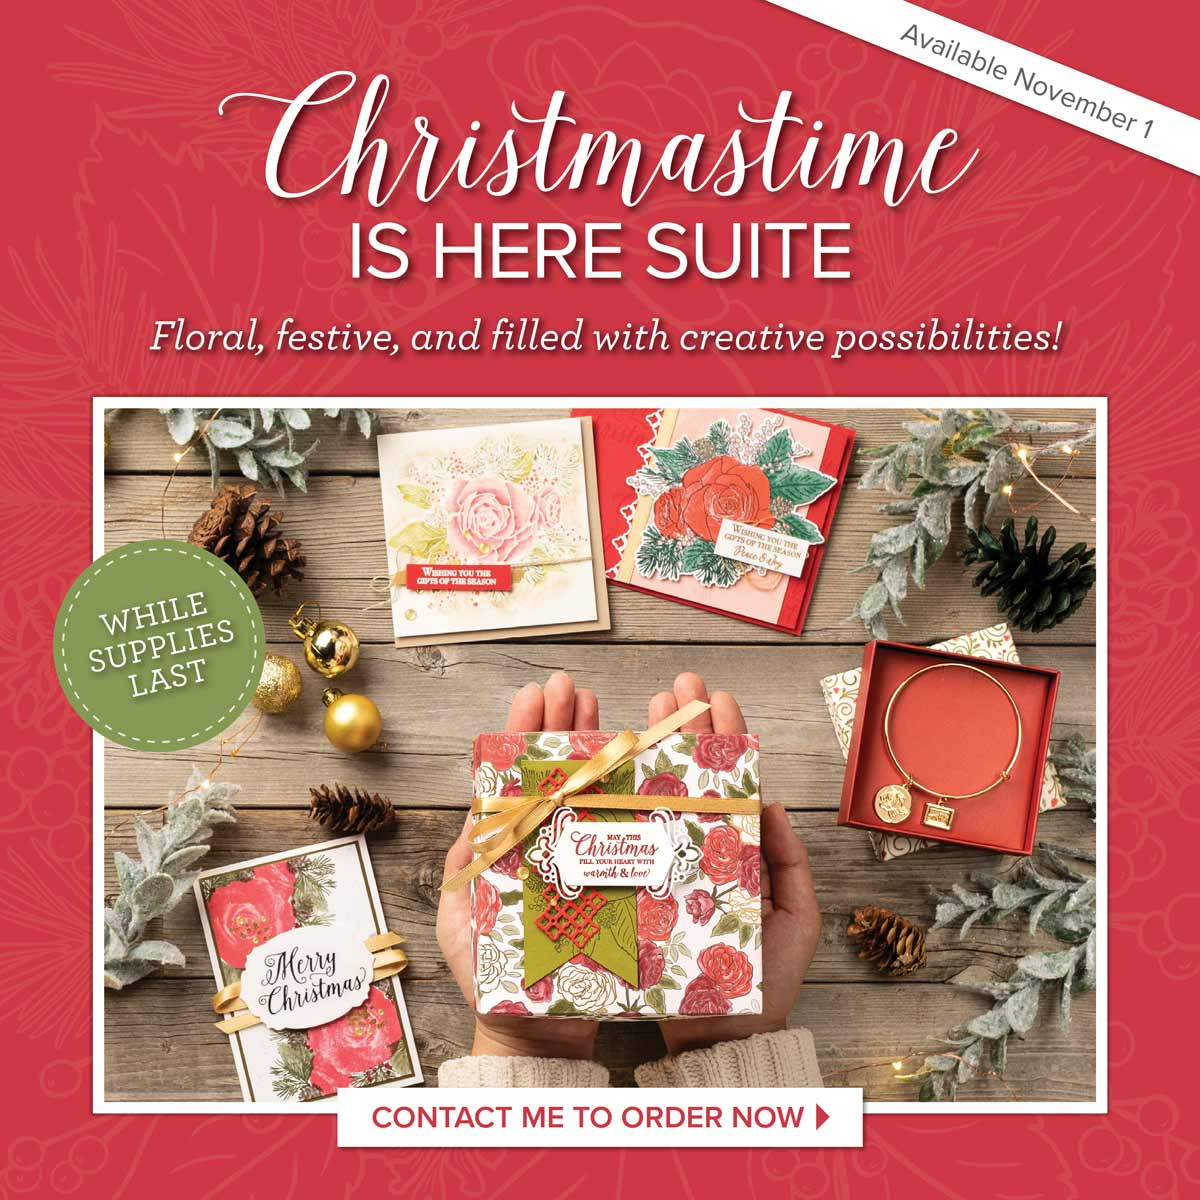 Christmas Time Is Here Suite with Wendy Lee, stampin Up, SU, #creativeleeyours, hand made card, tags, gifts, package, treats, Christmas roses, friend, birthday, hello, thanks, celebration, best wishes, kindness, creatively yours, creative-lee yours, DIY, pattern paper, fast & easy